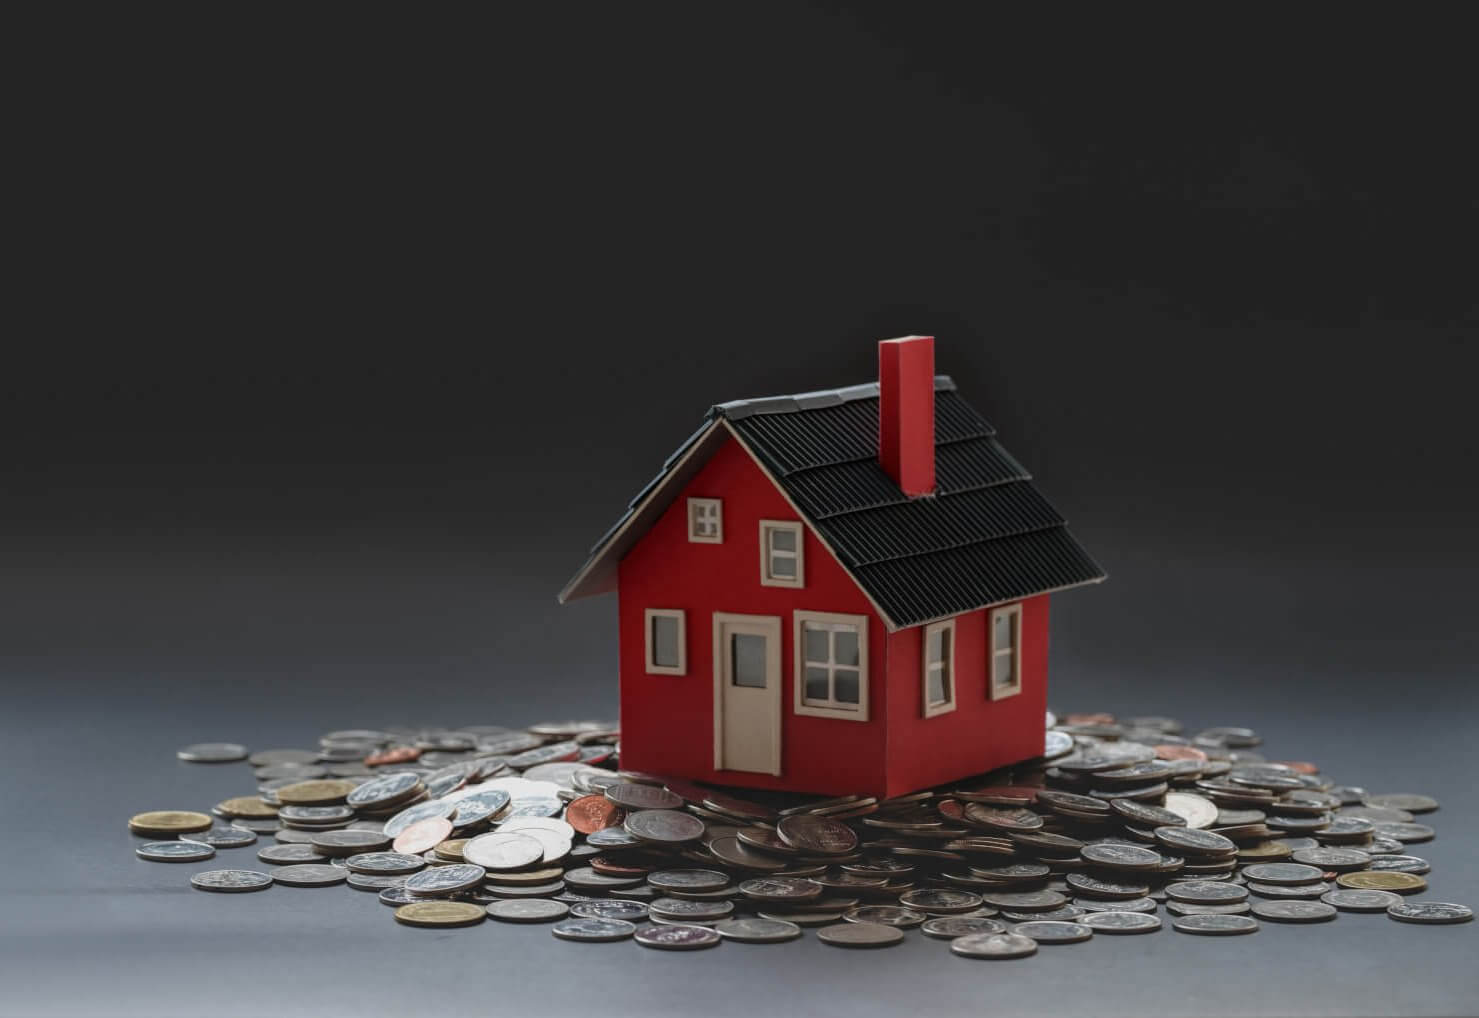 Avoid Costly Problems with an Apartment Pre-Purchase Building and Pest Inspection from Total Inspections. Image featuring miniature figurine of red house surrounded by small pennies and coins